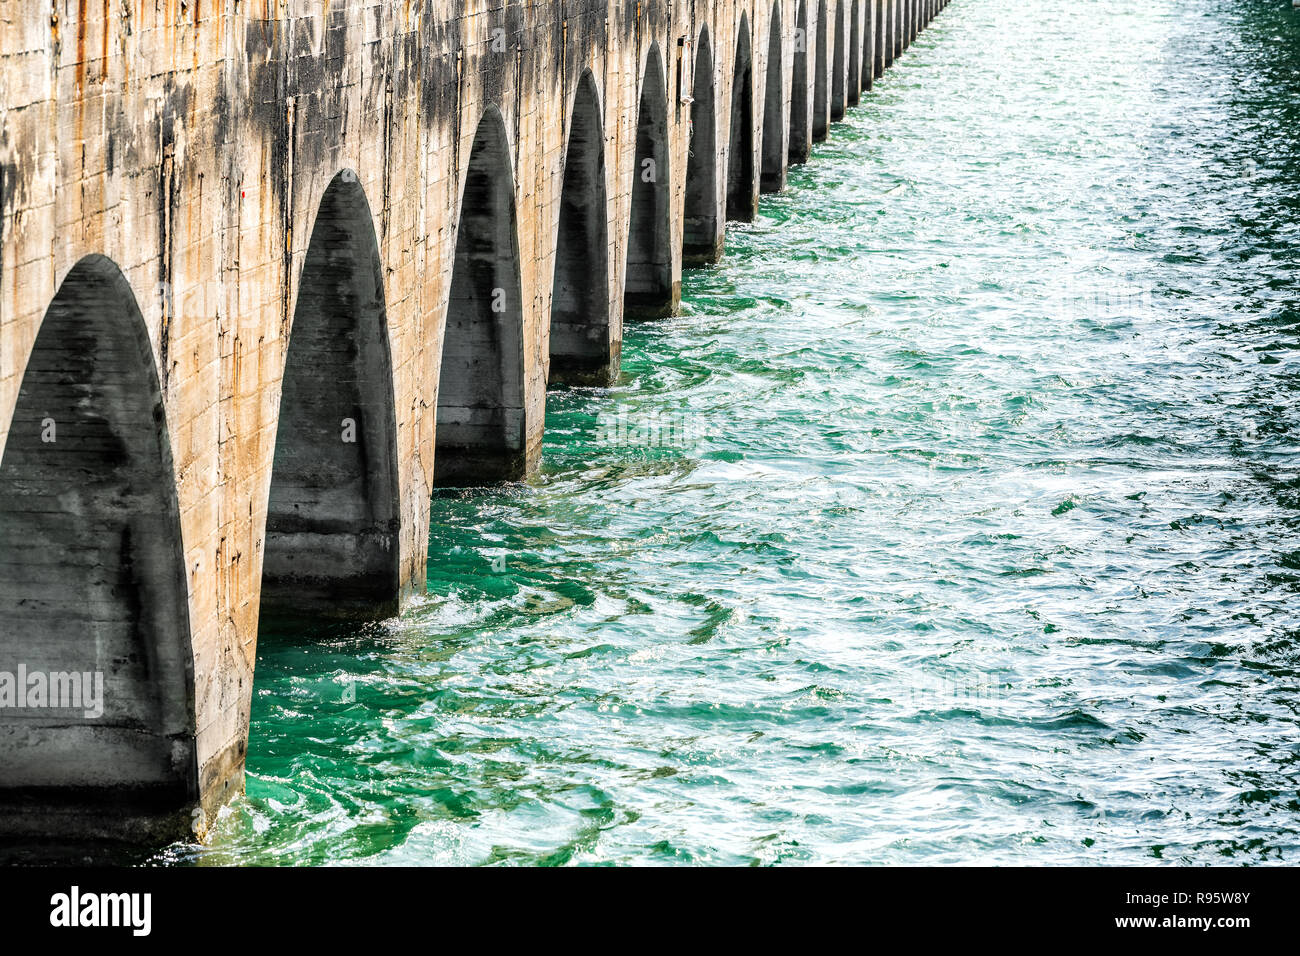 View under Old Seven Mile Knights Key-Pigeon Key-Moser Channel-Pacet Channel Bridge near overseas highway road, ocean, sea waves at Pigeon key, Florid - Stock Image